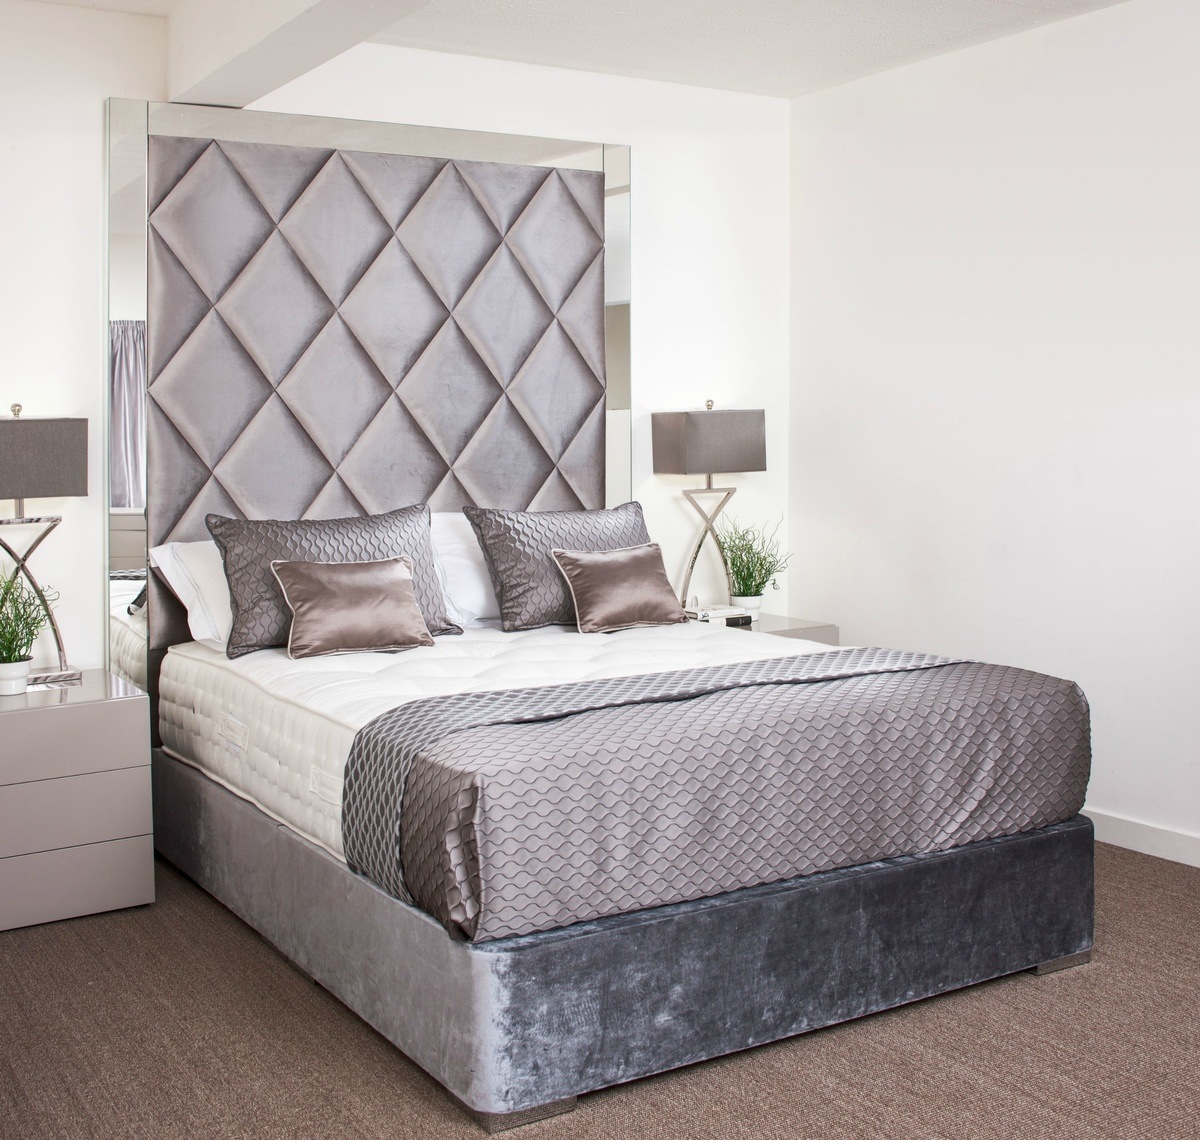 Tiffany Bespoke Bed With Mirror Surround Robinsons Beds